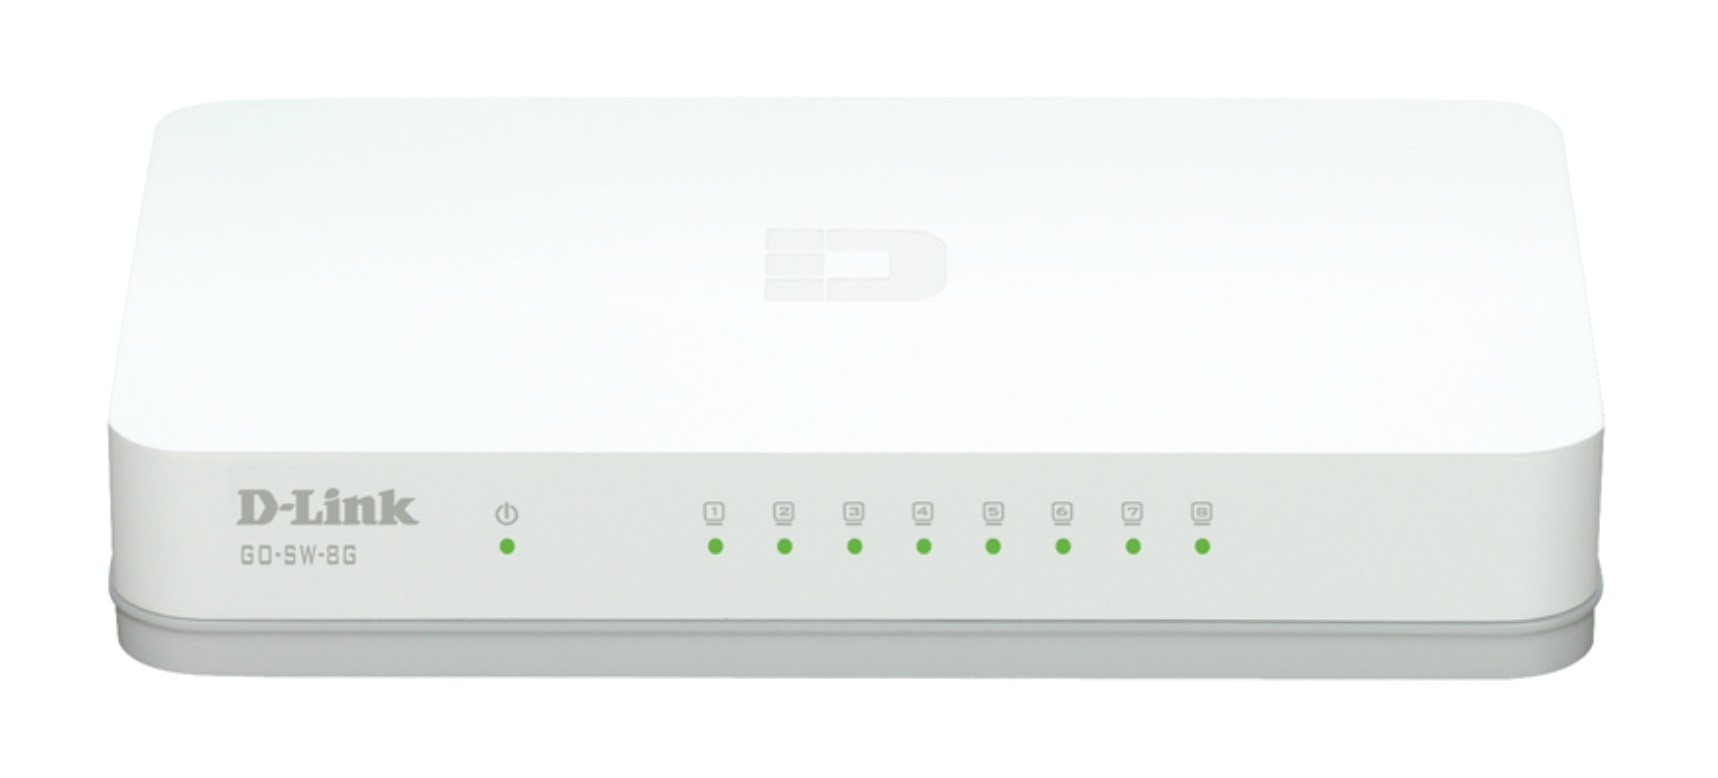 D-LINK GO-SW-8G/E UNMANAGED NETWORK SWITCH GIGABIT ETHERNET (10/100/1000) WHITE